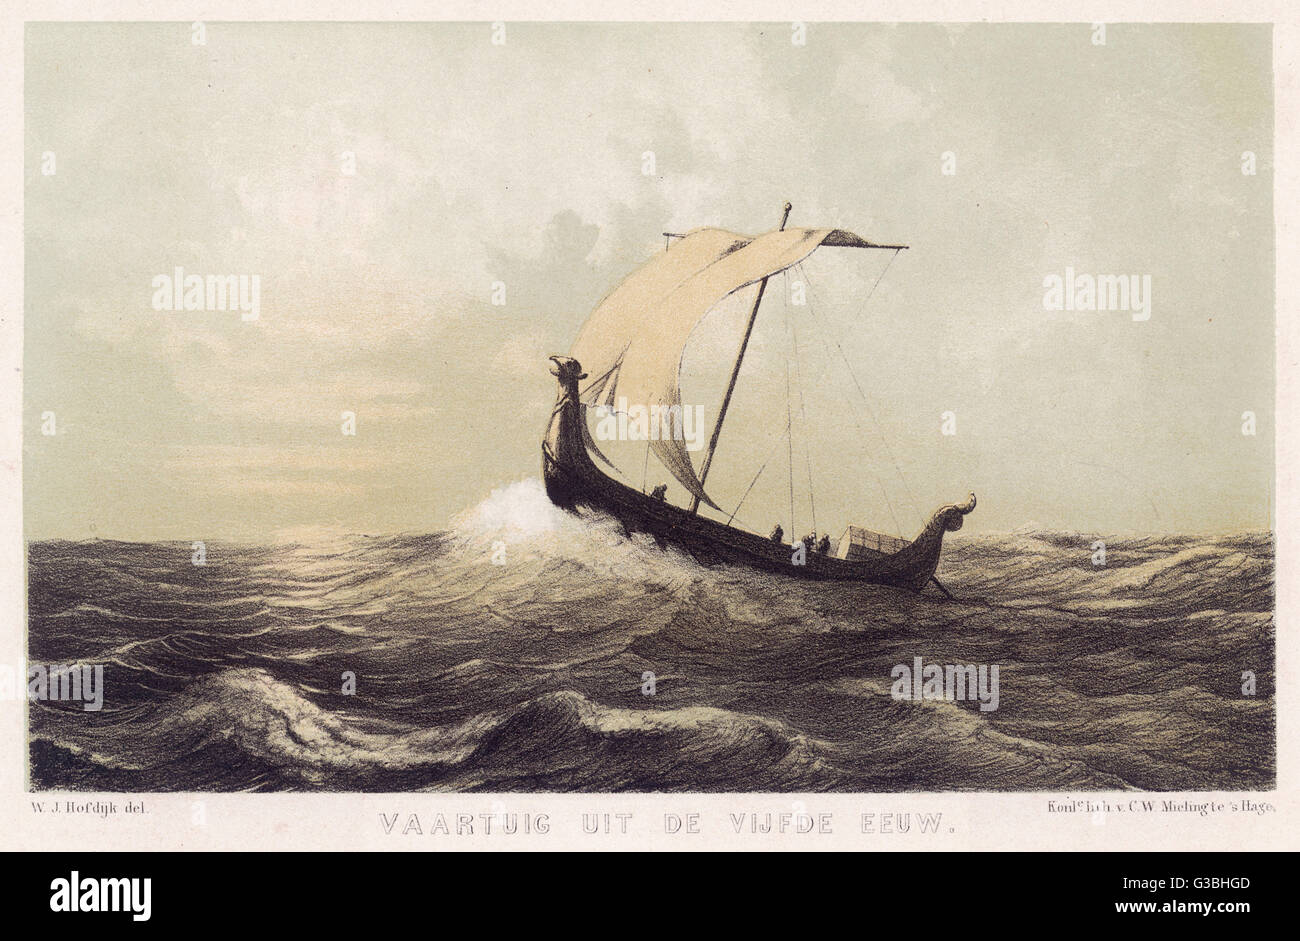 A Viking vessel heads out into  the open sea, her sail  bellying out before a  favouring wind.      Date: 8th-9th Stock Photo